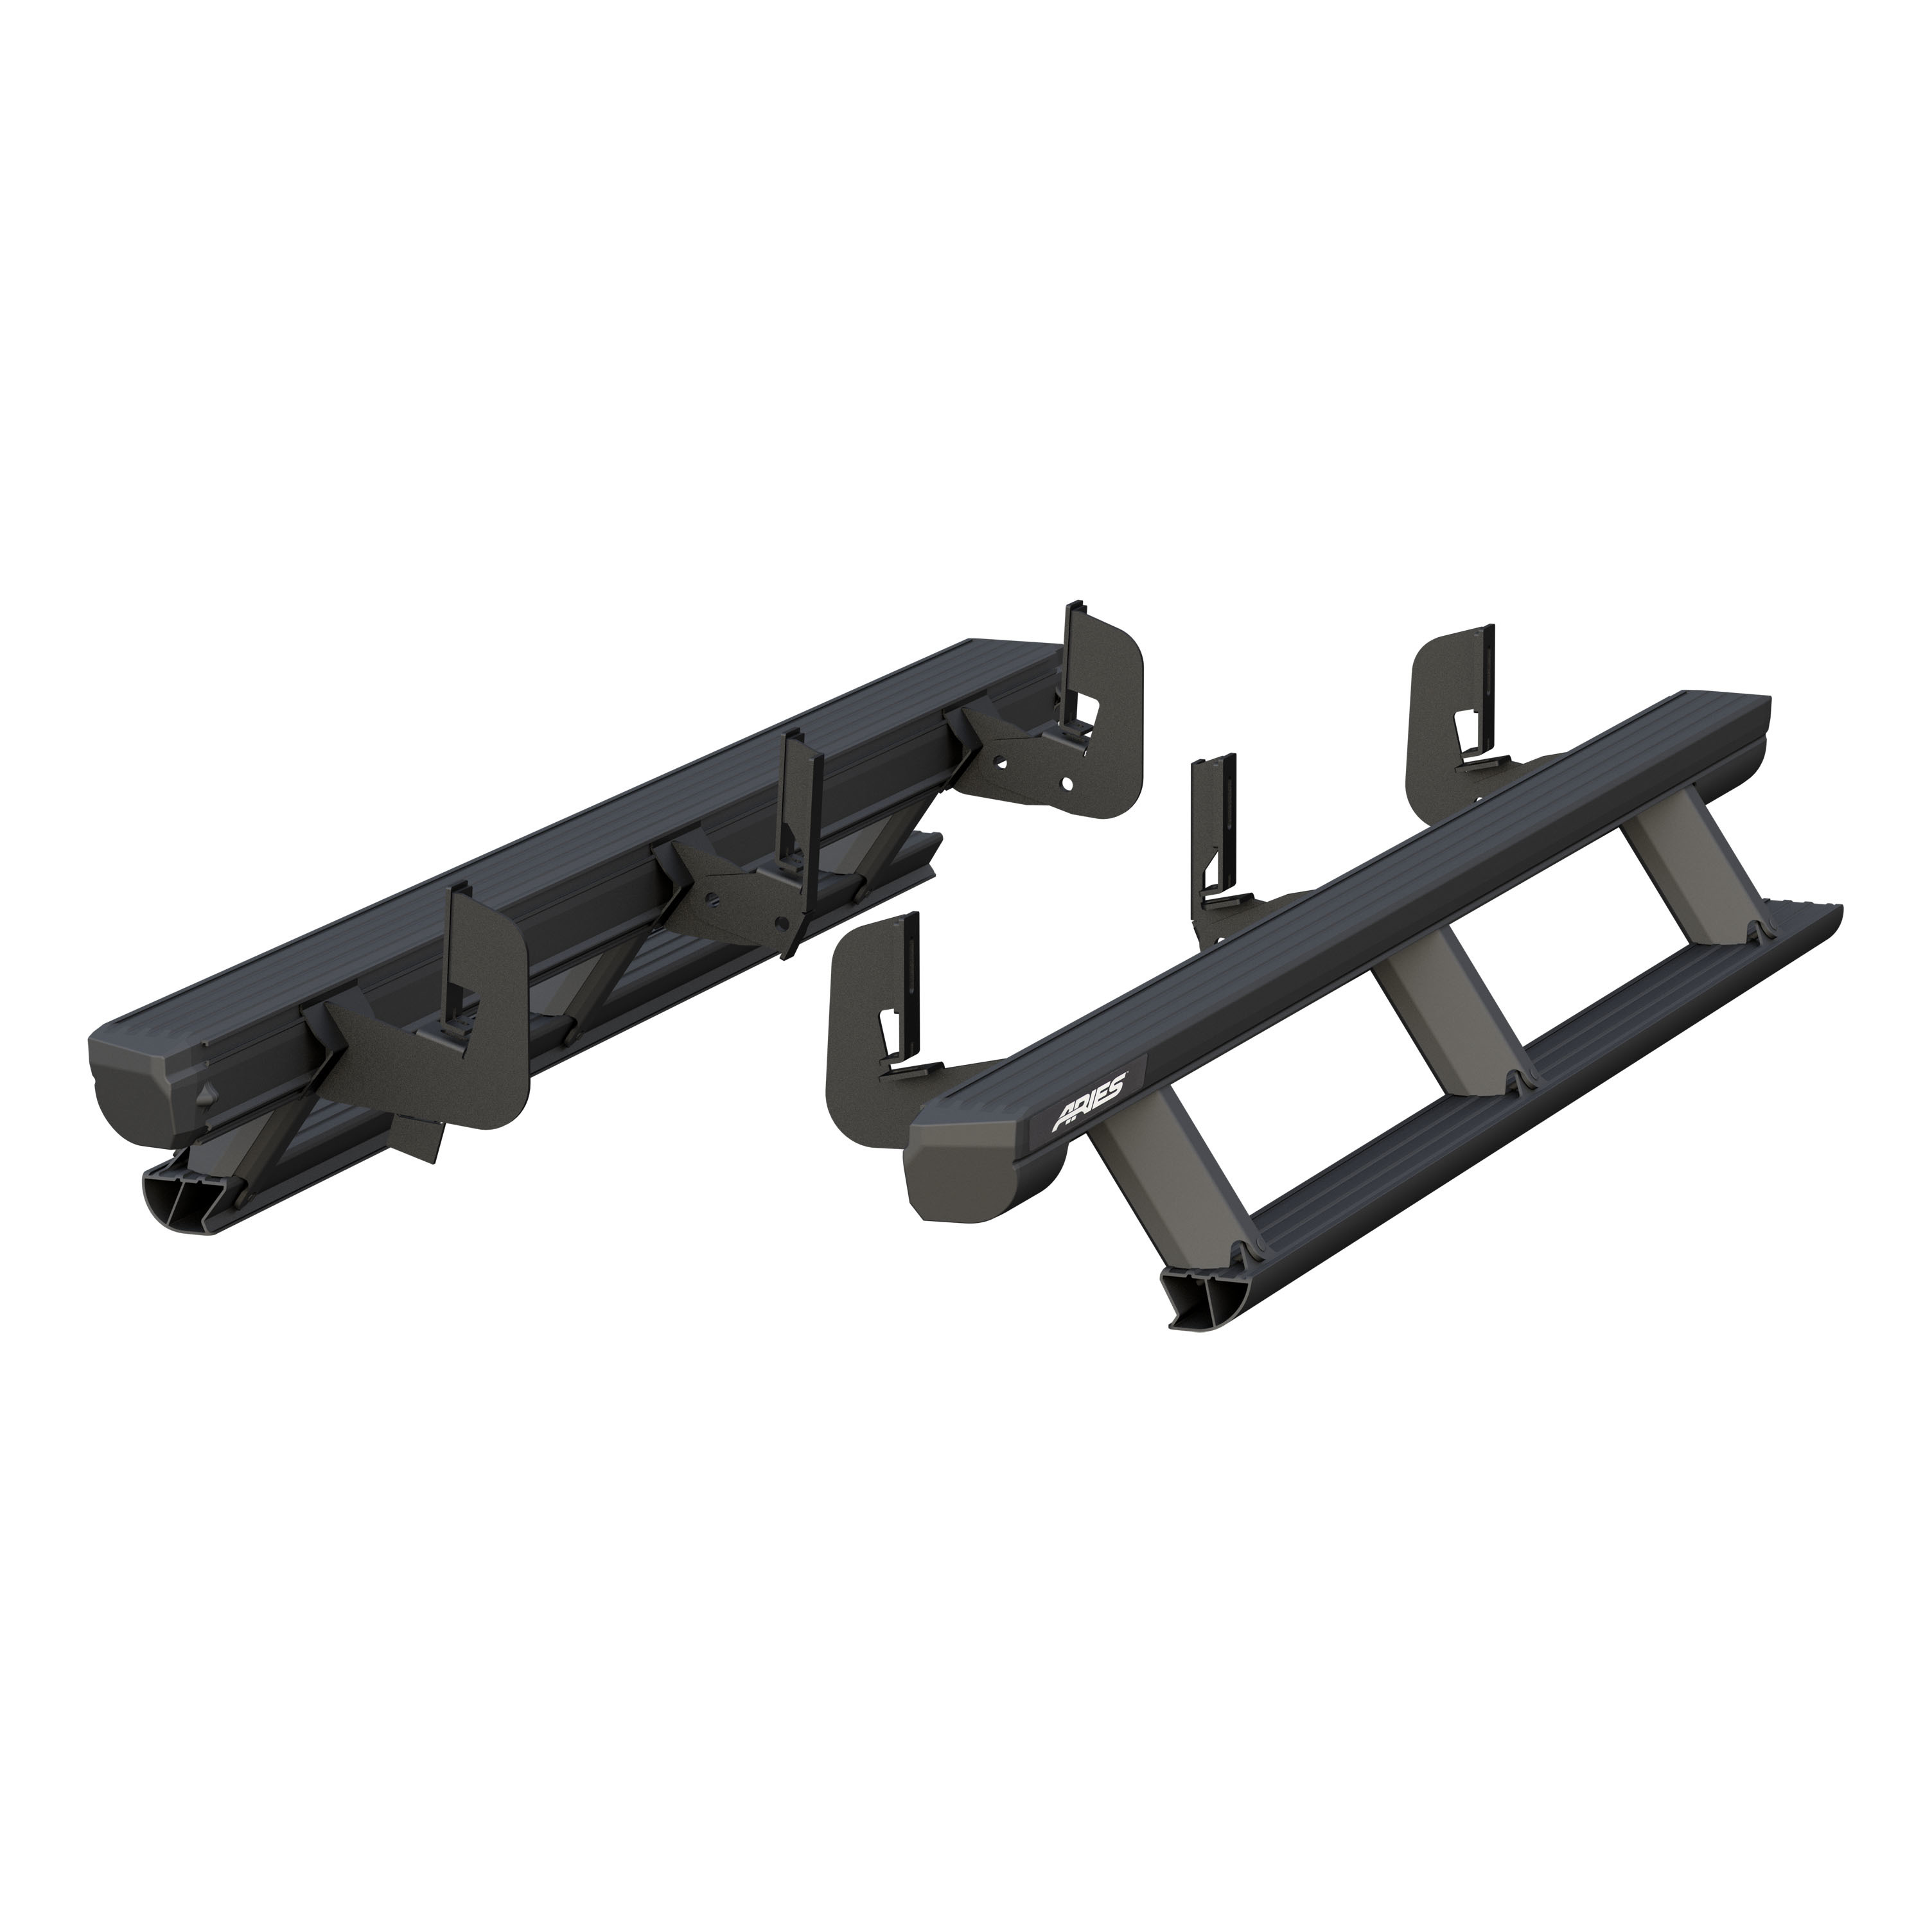 Aries Automotive 3047902 Actiontrac Powered Running Boards With Automated Patented Step-Within-A-Step - Black Powder-Coated Aluminum (1 Pair W/ Brackets)